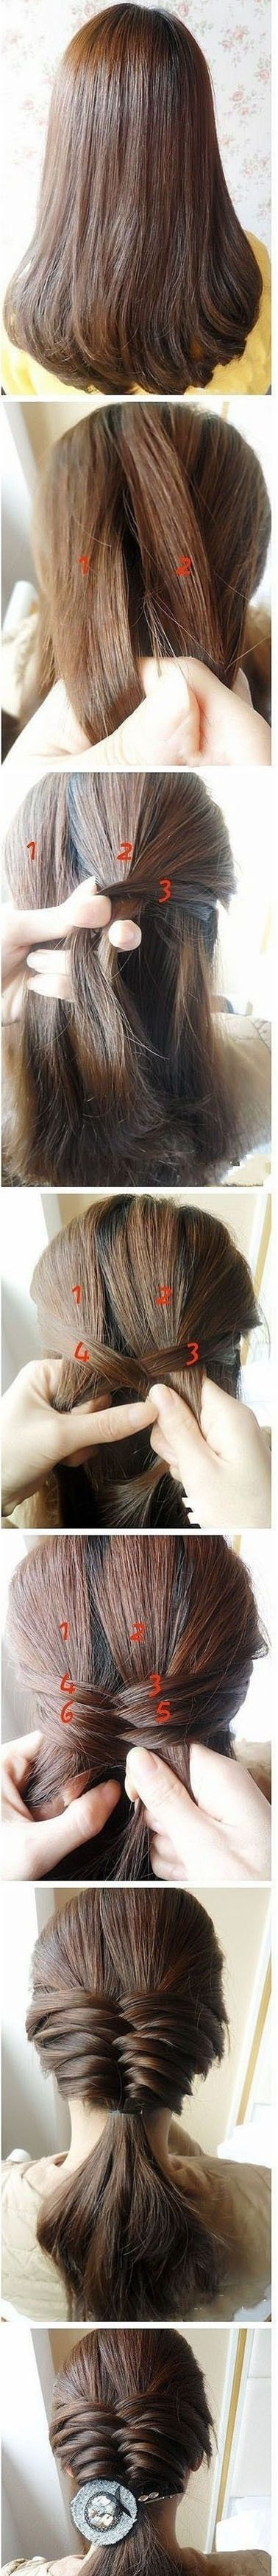 Thank you...I've needed a step by step guide to do this.  DIY a beautiful hair style 9-21